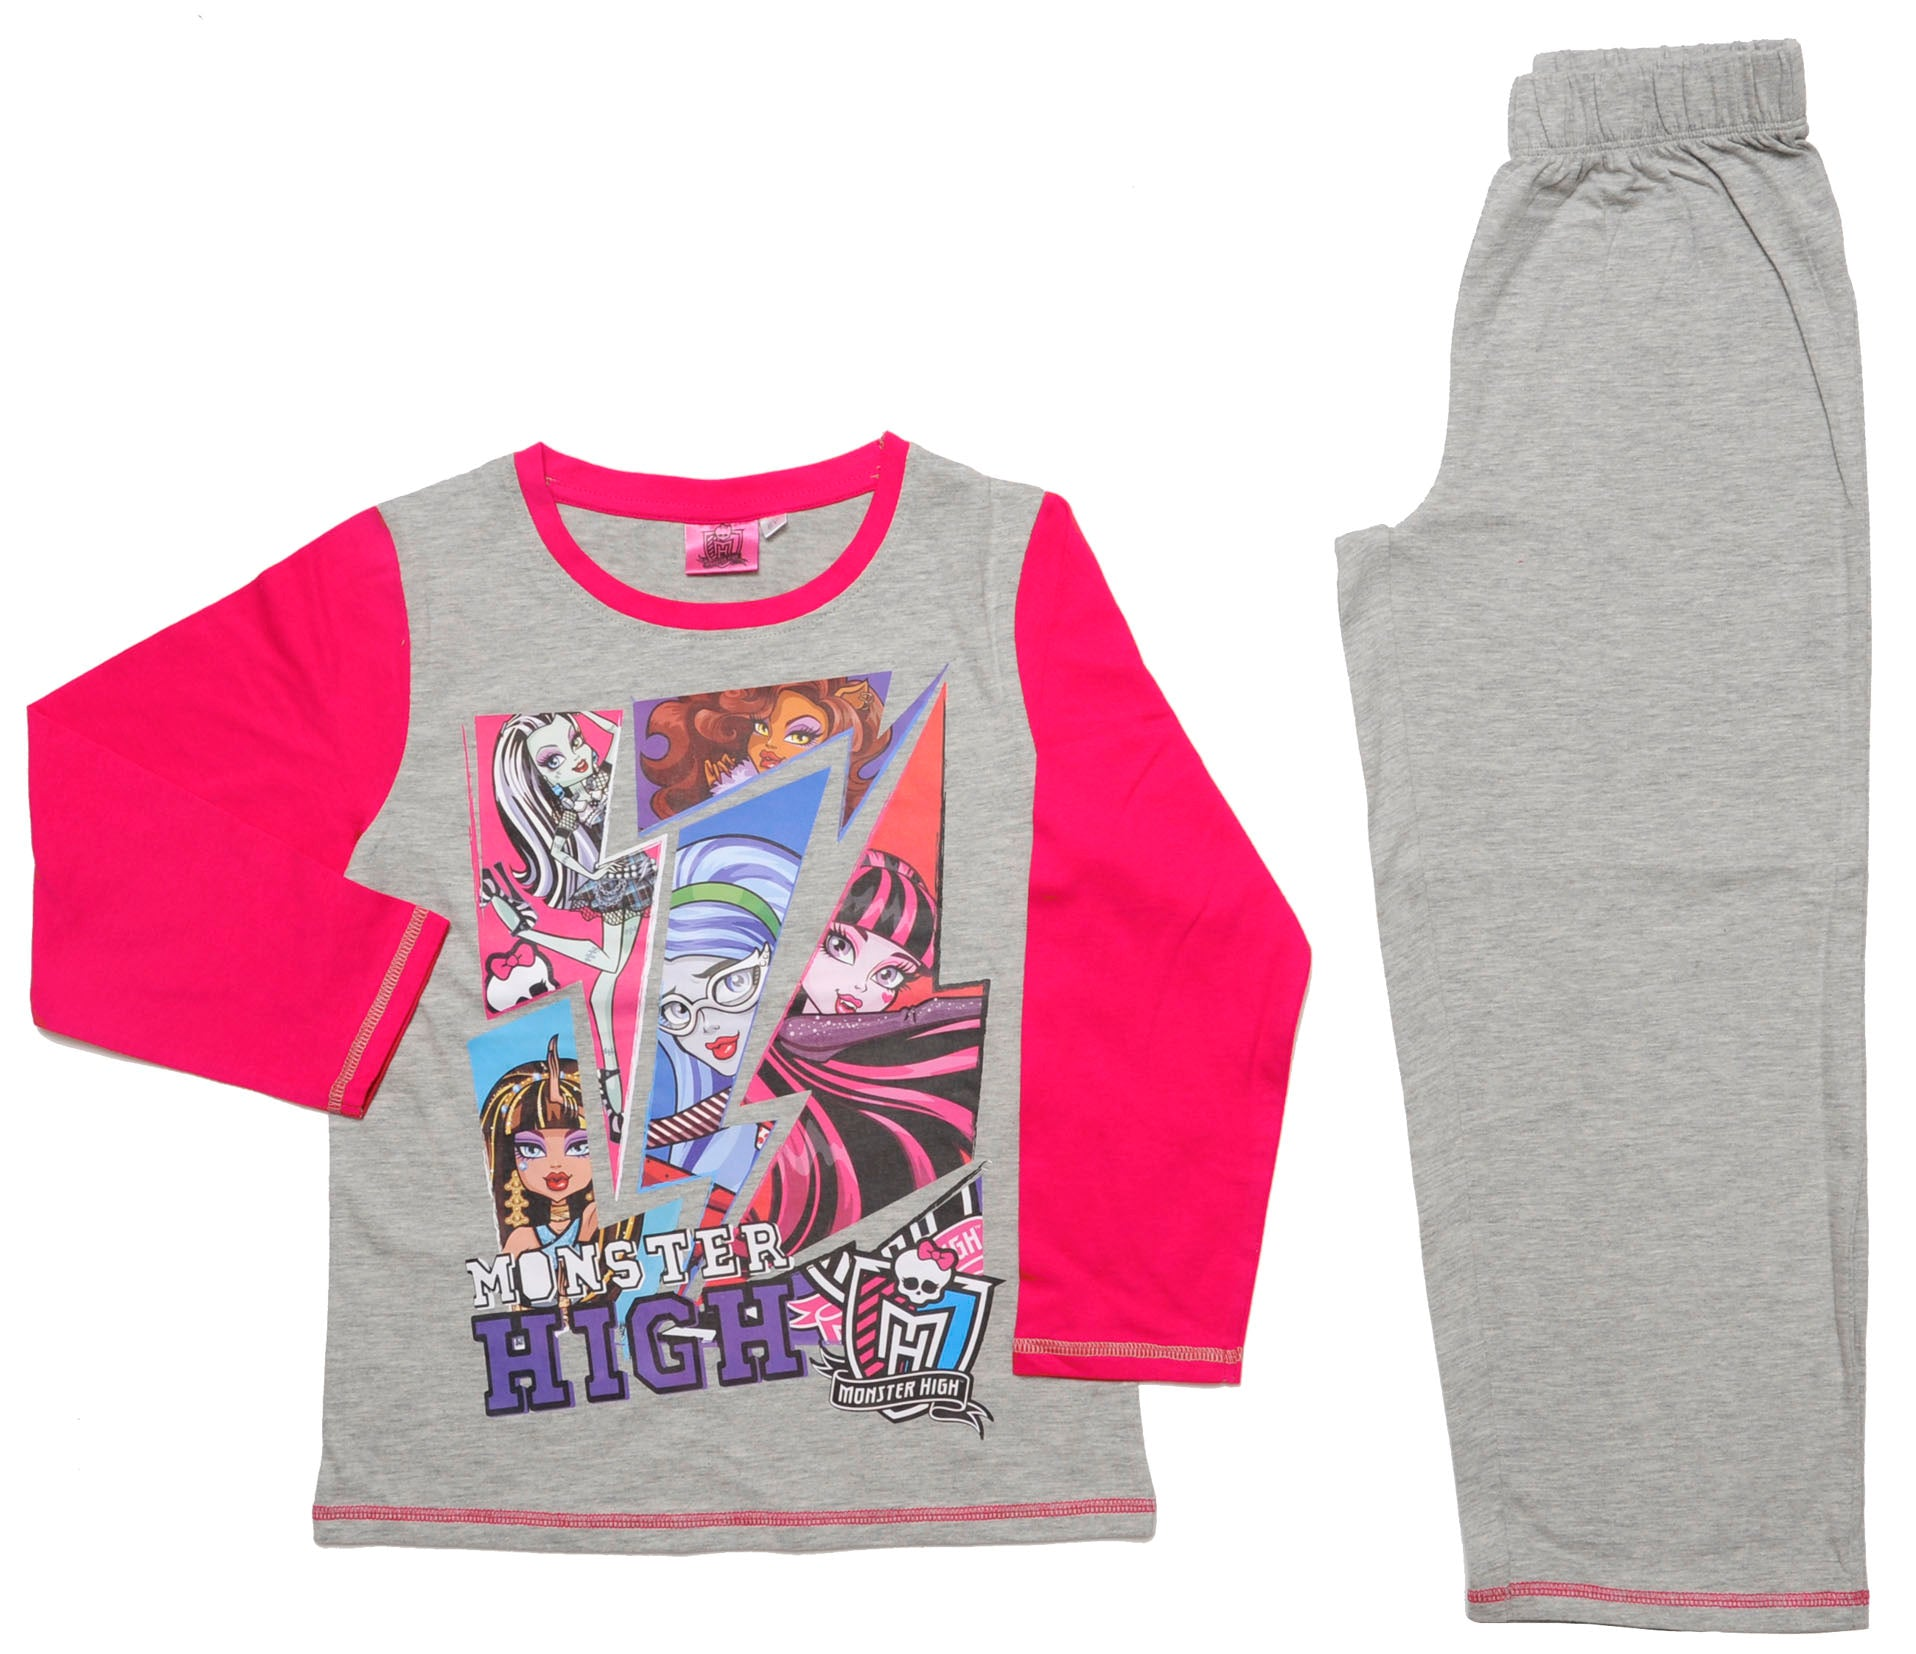 Monster high set of pyjamas in pink